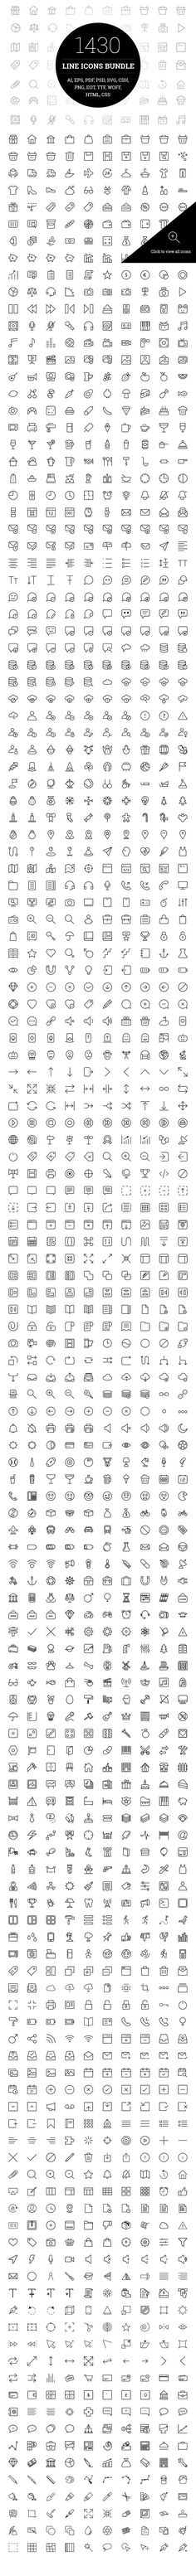 1430 Line Icons Bundle. Clothes Icons. $27.00